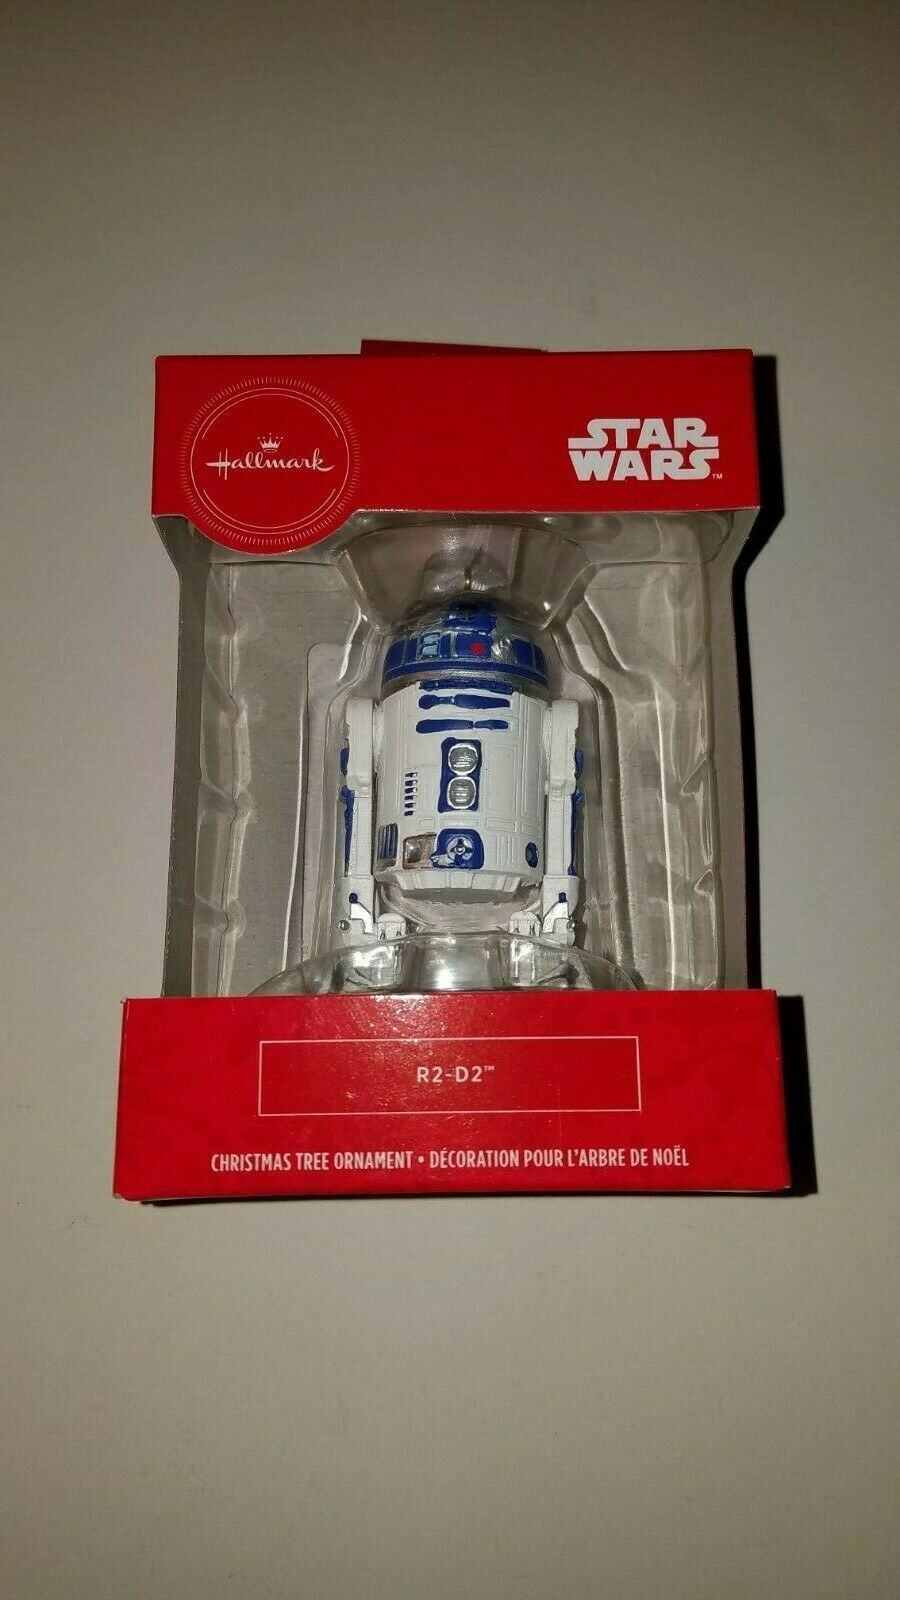 Primary image for Hallmark ornament disney star wars r2-d2  new in box christmas decor